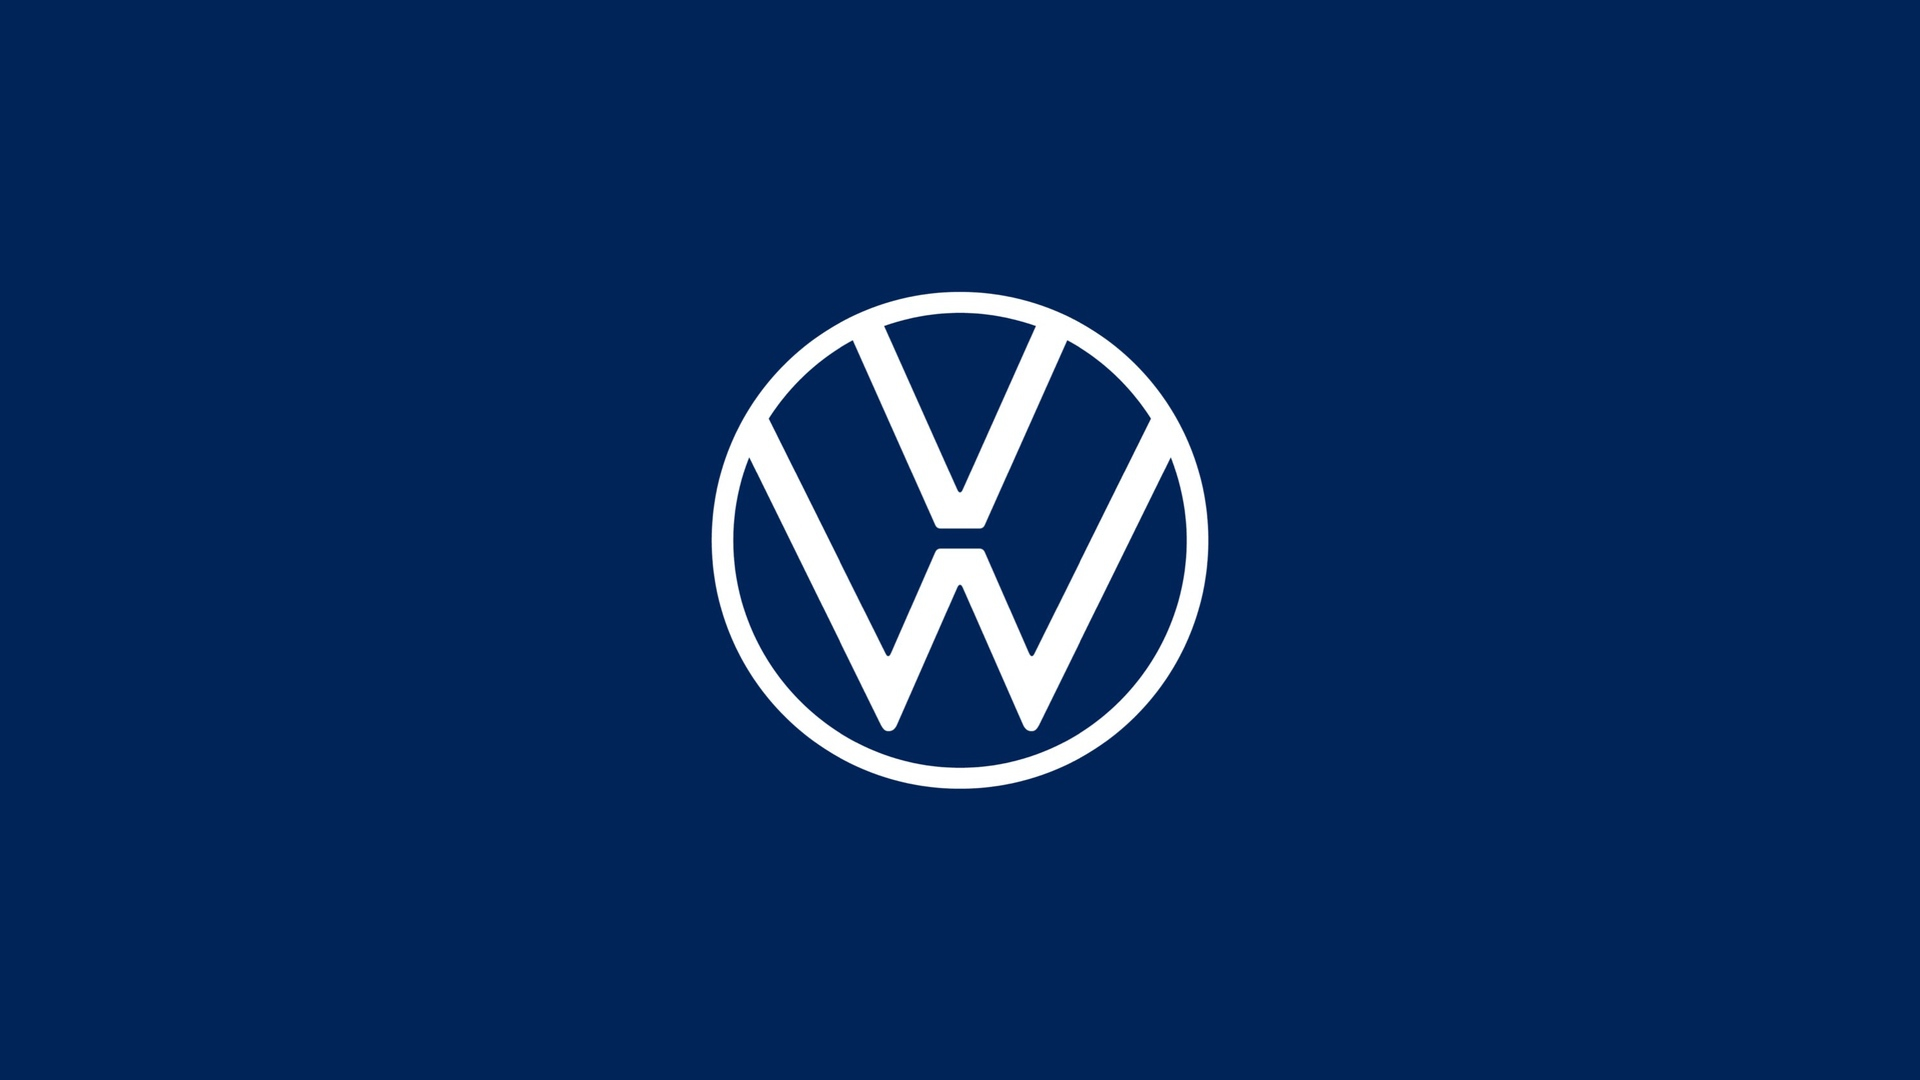 New_VW_logo_0000